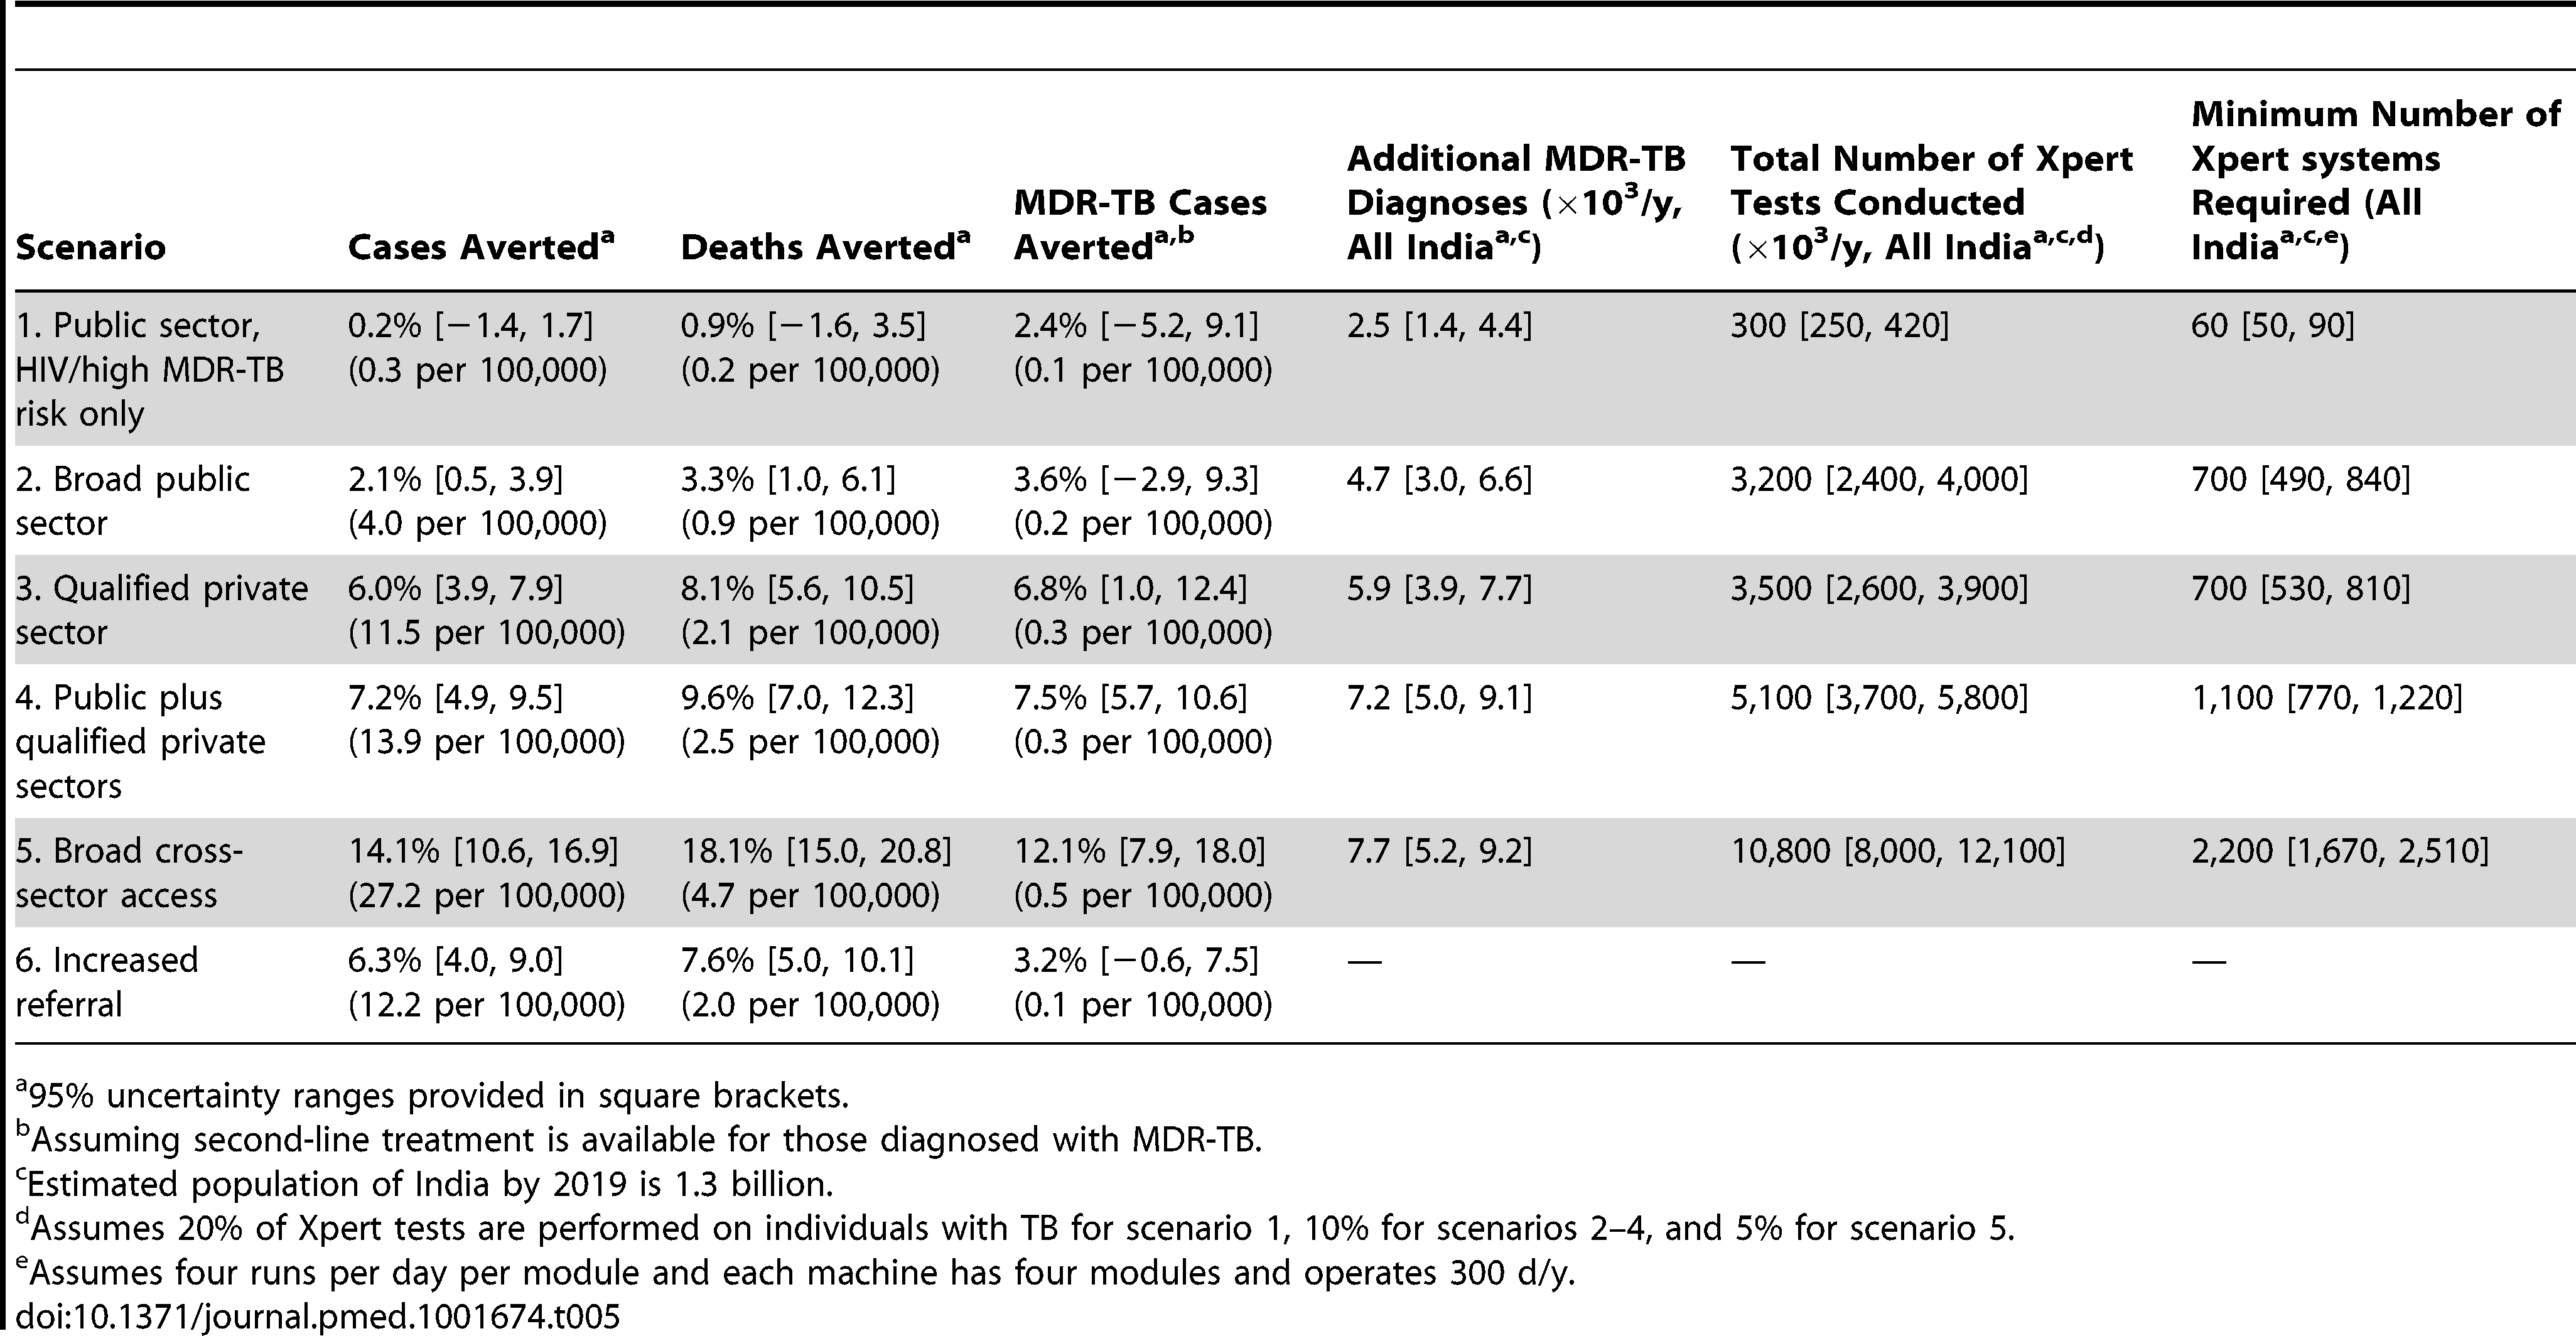 Effect of Xpert rollout on annual TB incidence and mortality after 5